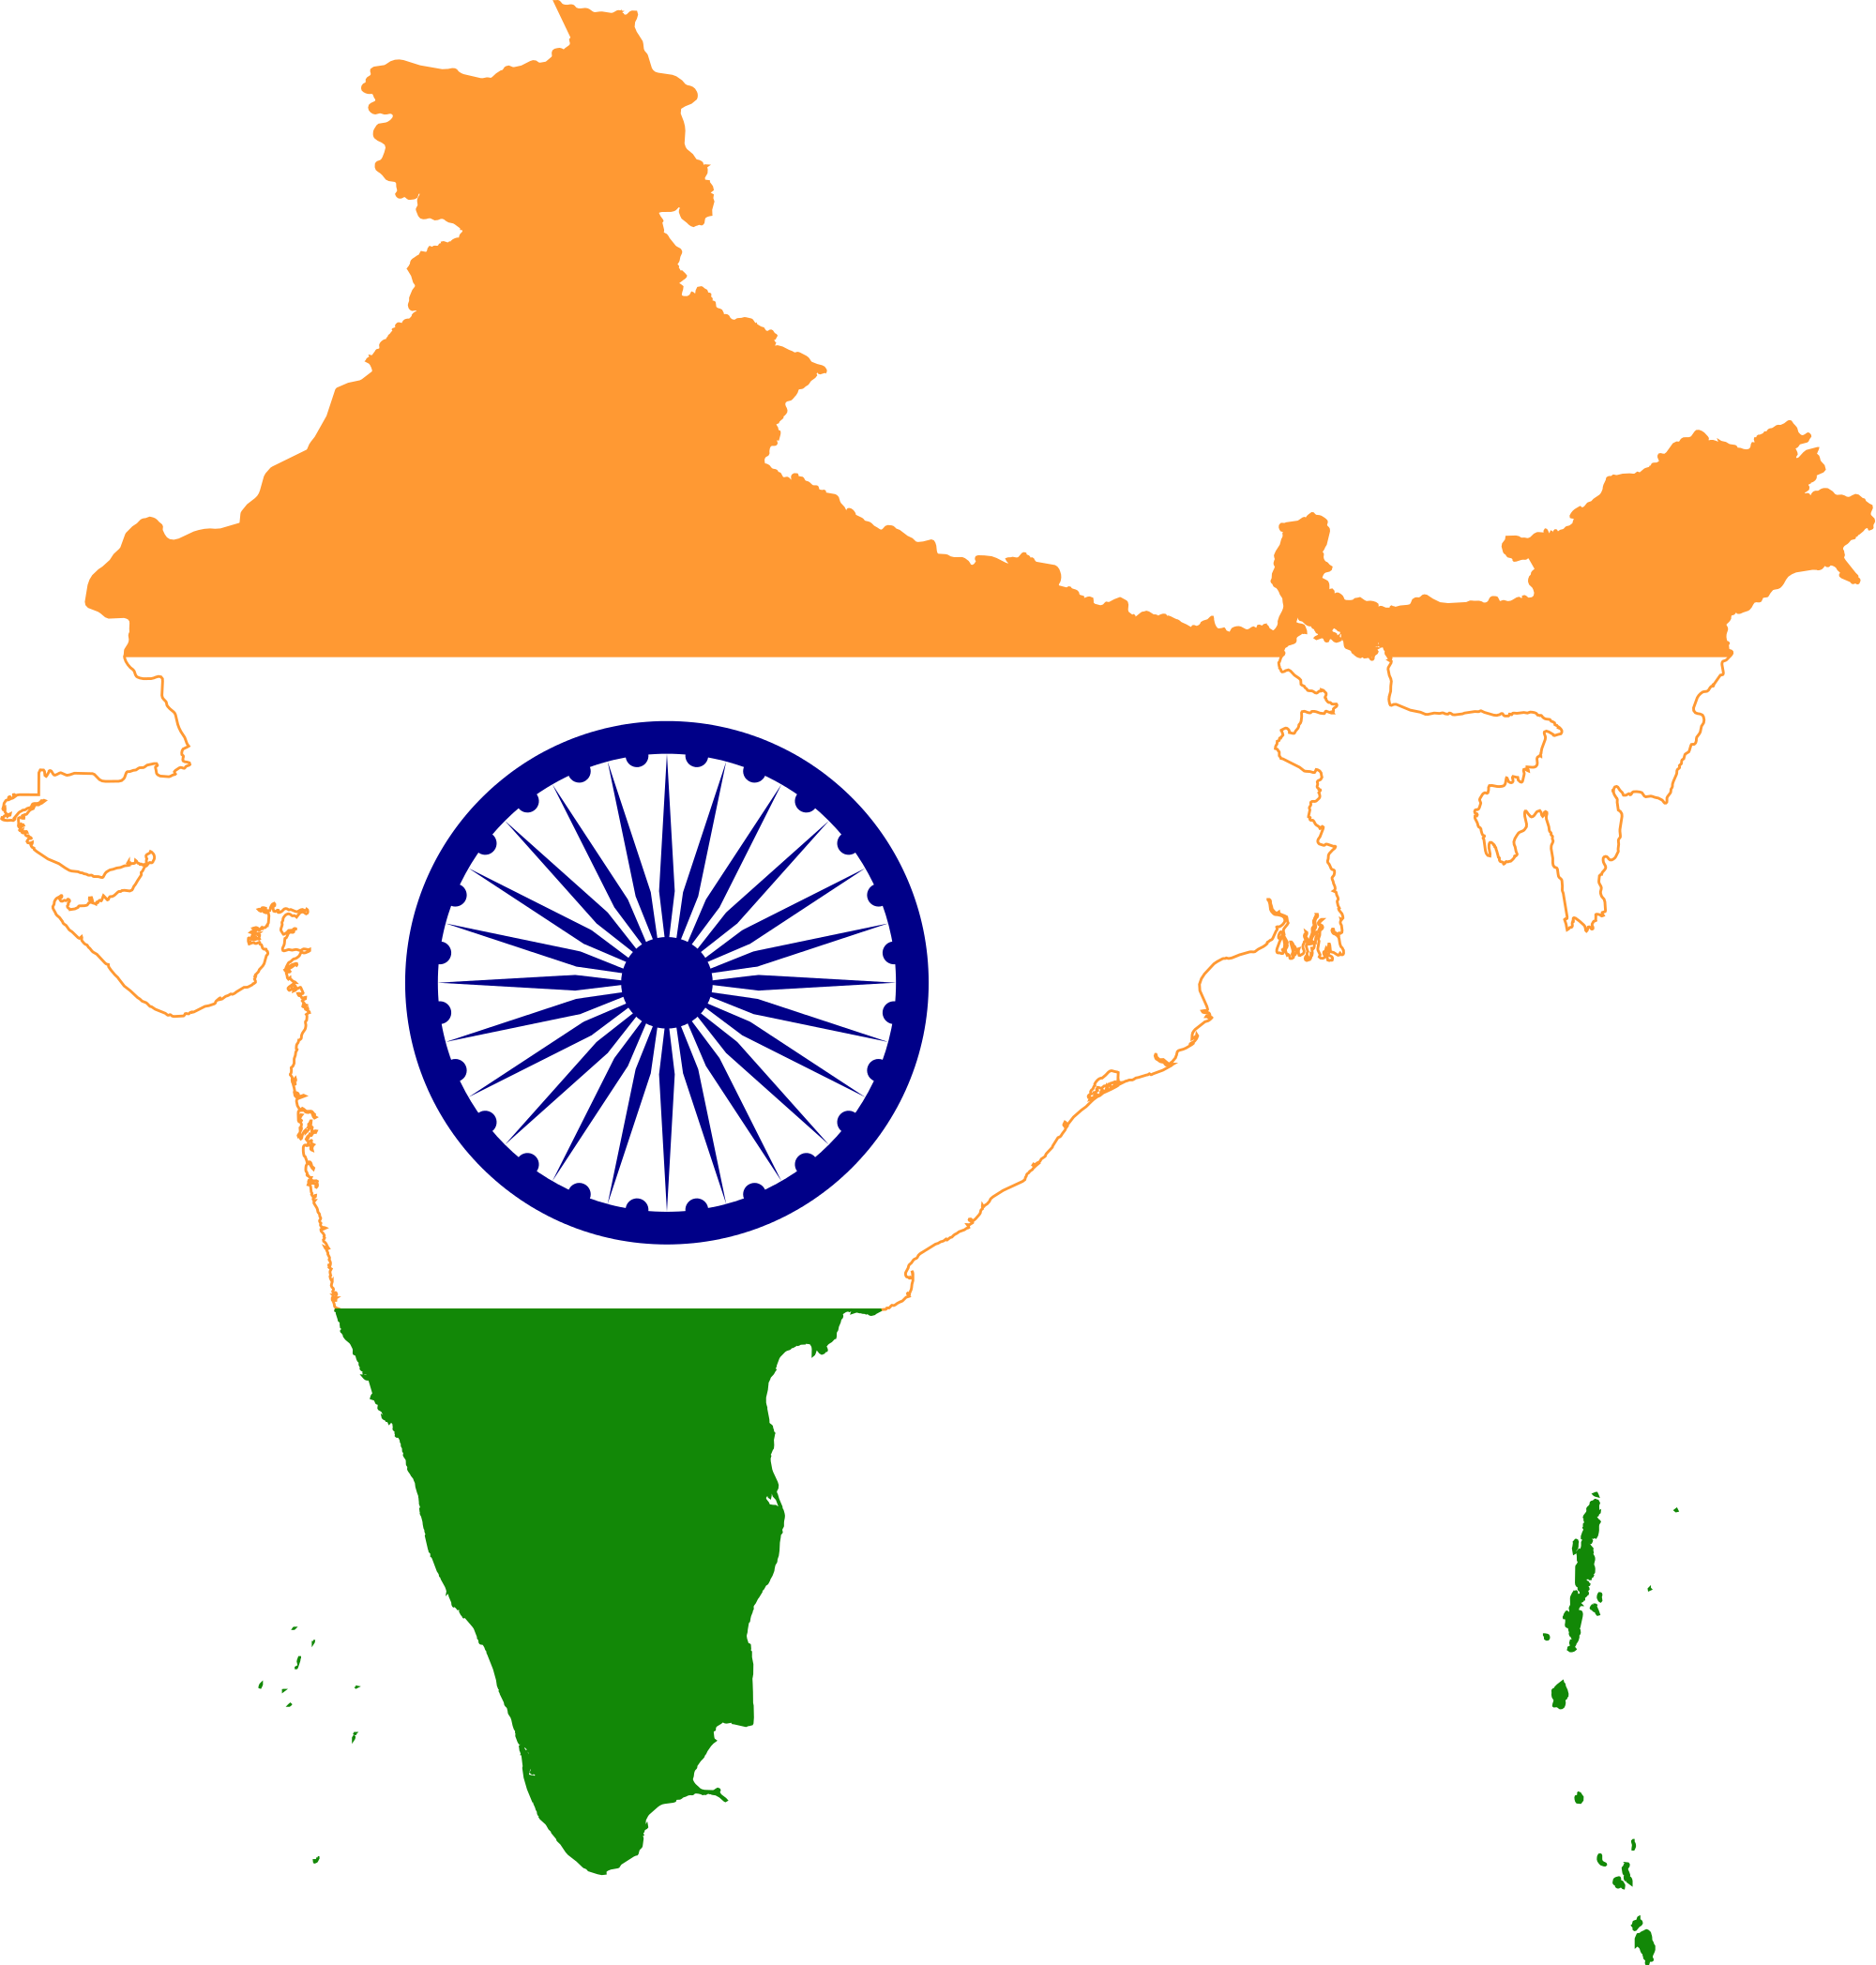 India svg #13, Download drawings